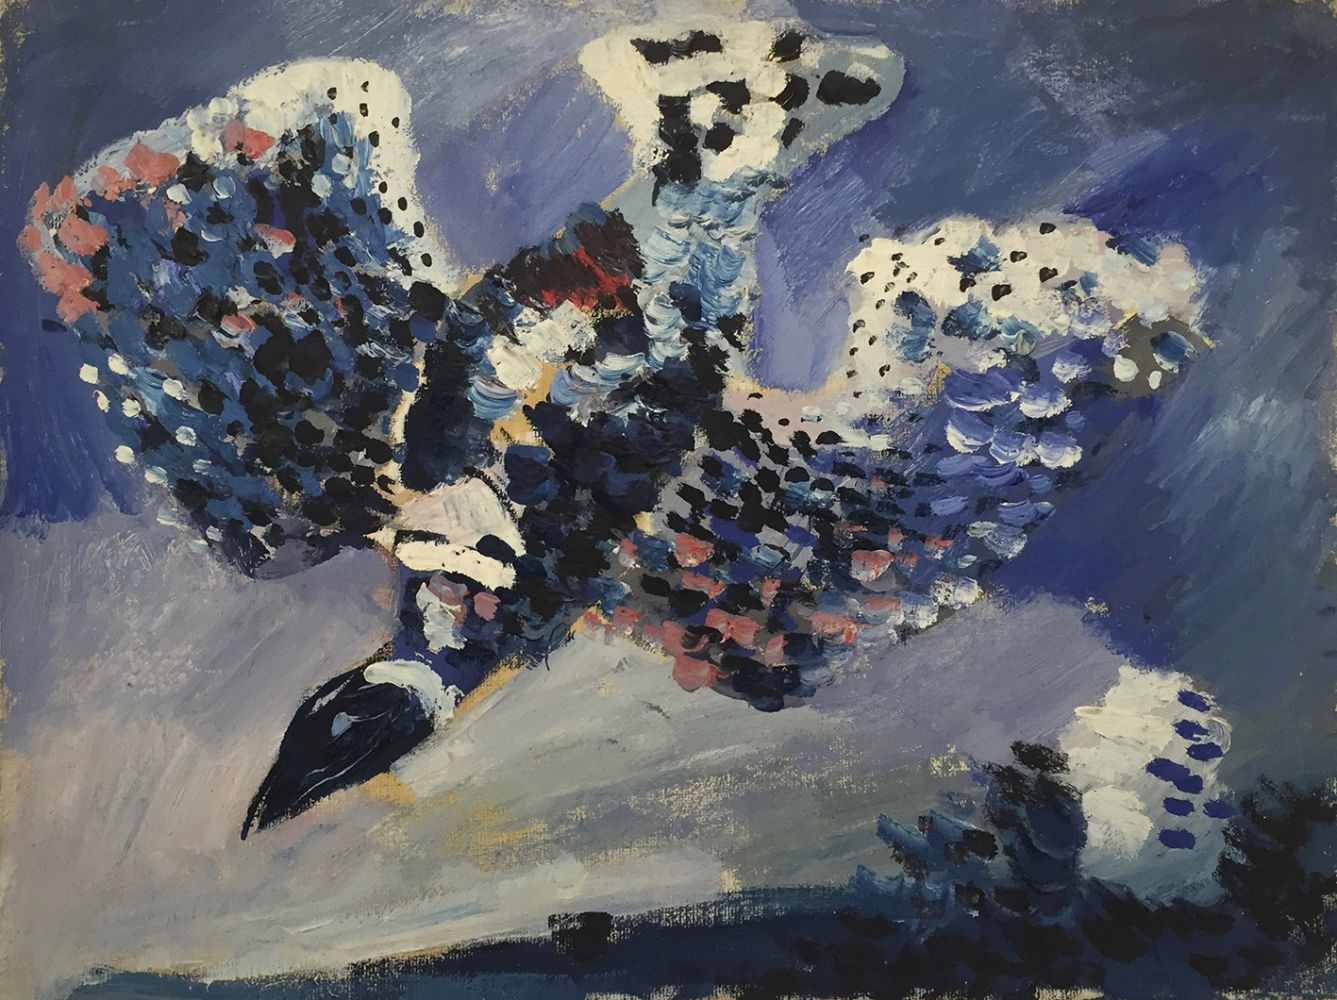 Curt Lahs | Swooping Bird | 1931 | oil on canvas | verso authorized, dated and titled by estate | 23.8 x 31.8